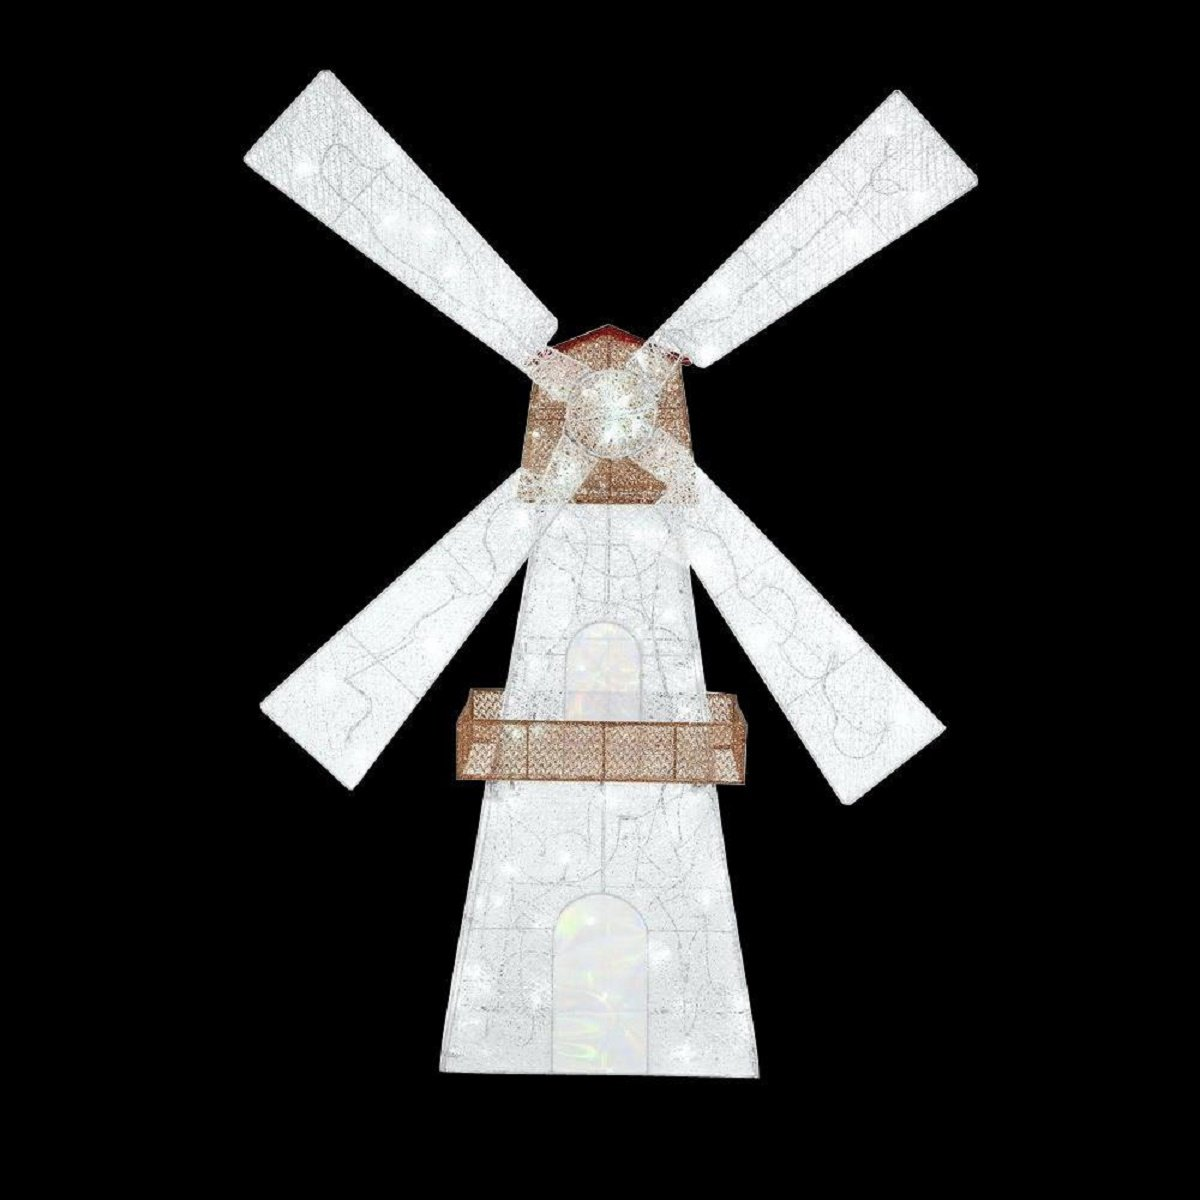 6' Acrylic LED Lighted Twinkling Windmill Christmas Decoration